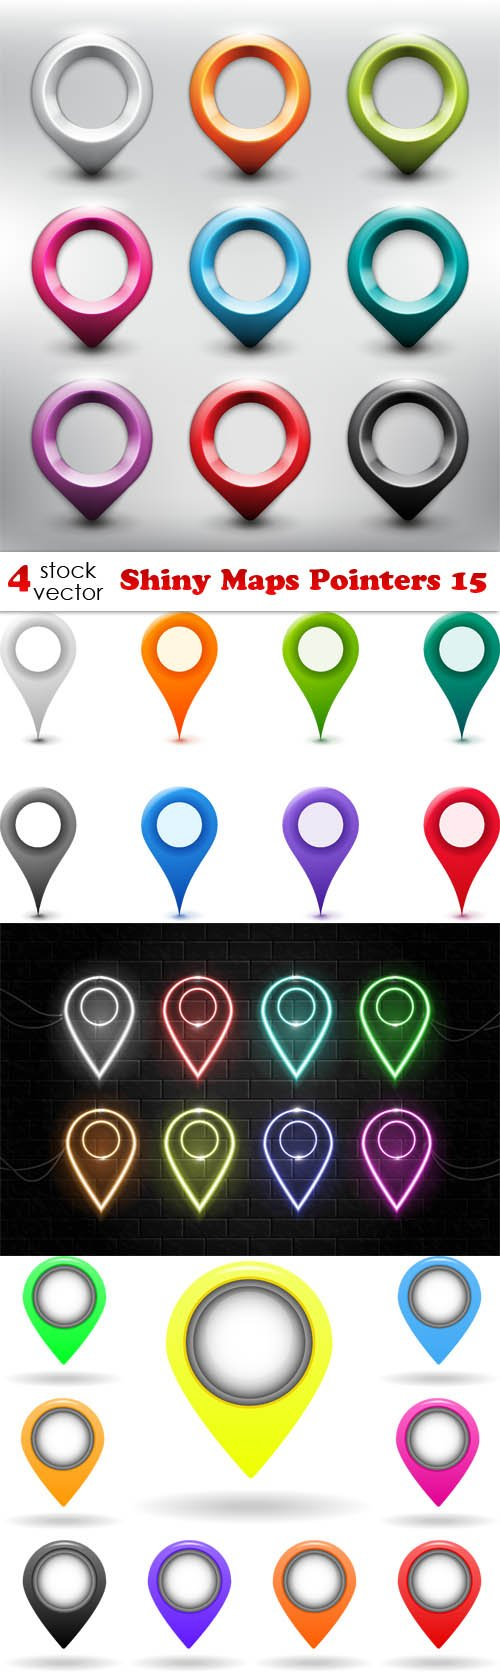 Vectors - Shiny Maps Pointers 15